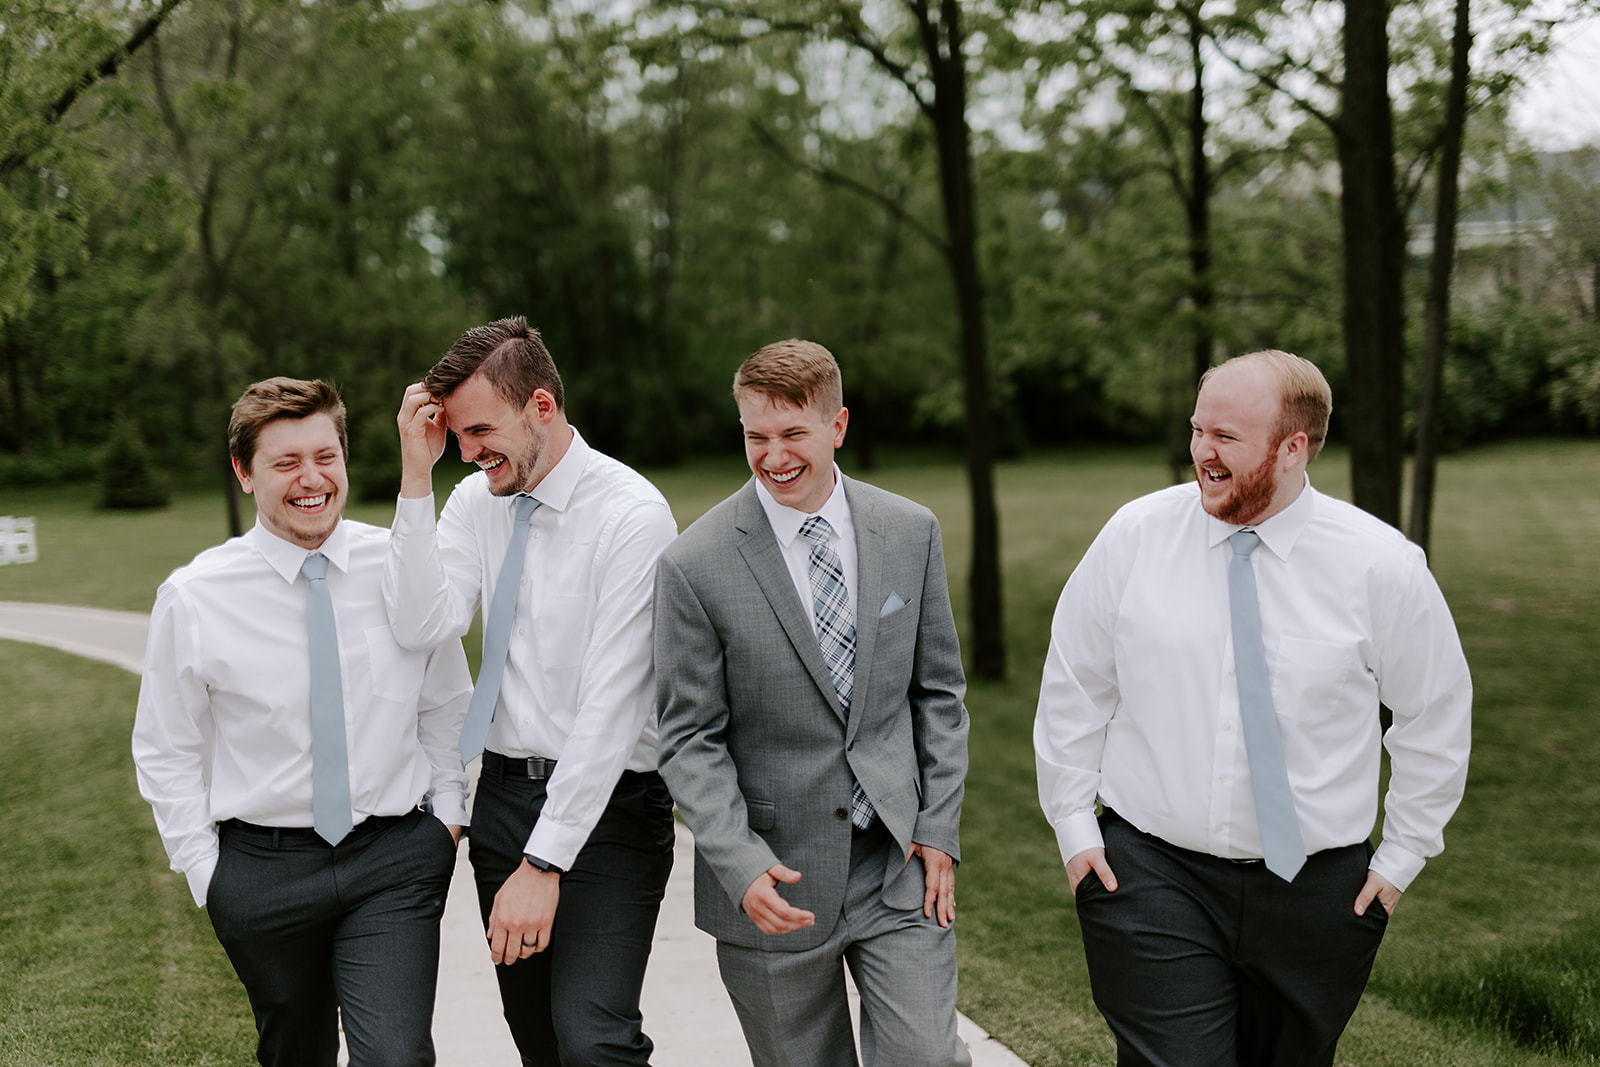 Kendra_and_Mattew_Indiana_Wedding_by_Emily_Wehner-400.jpg